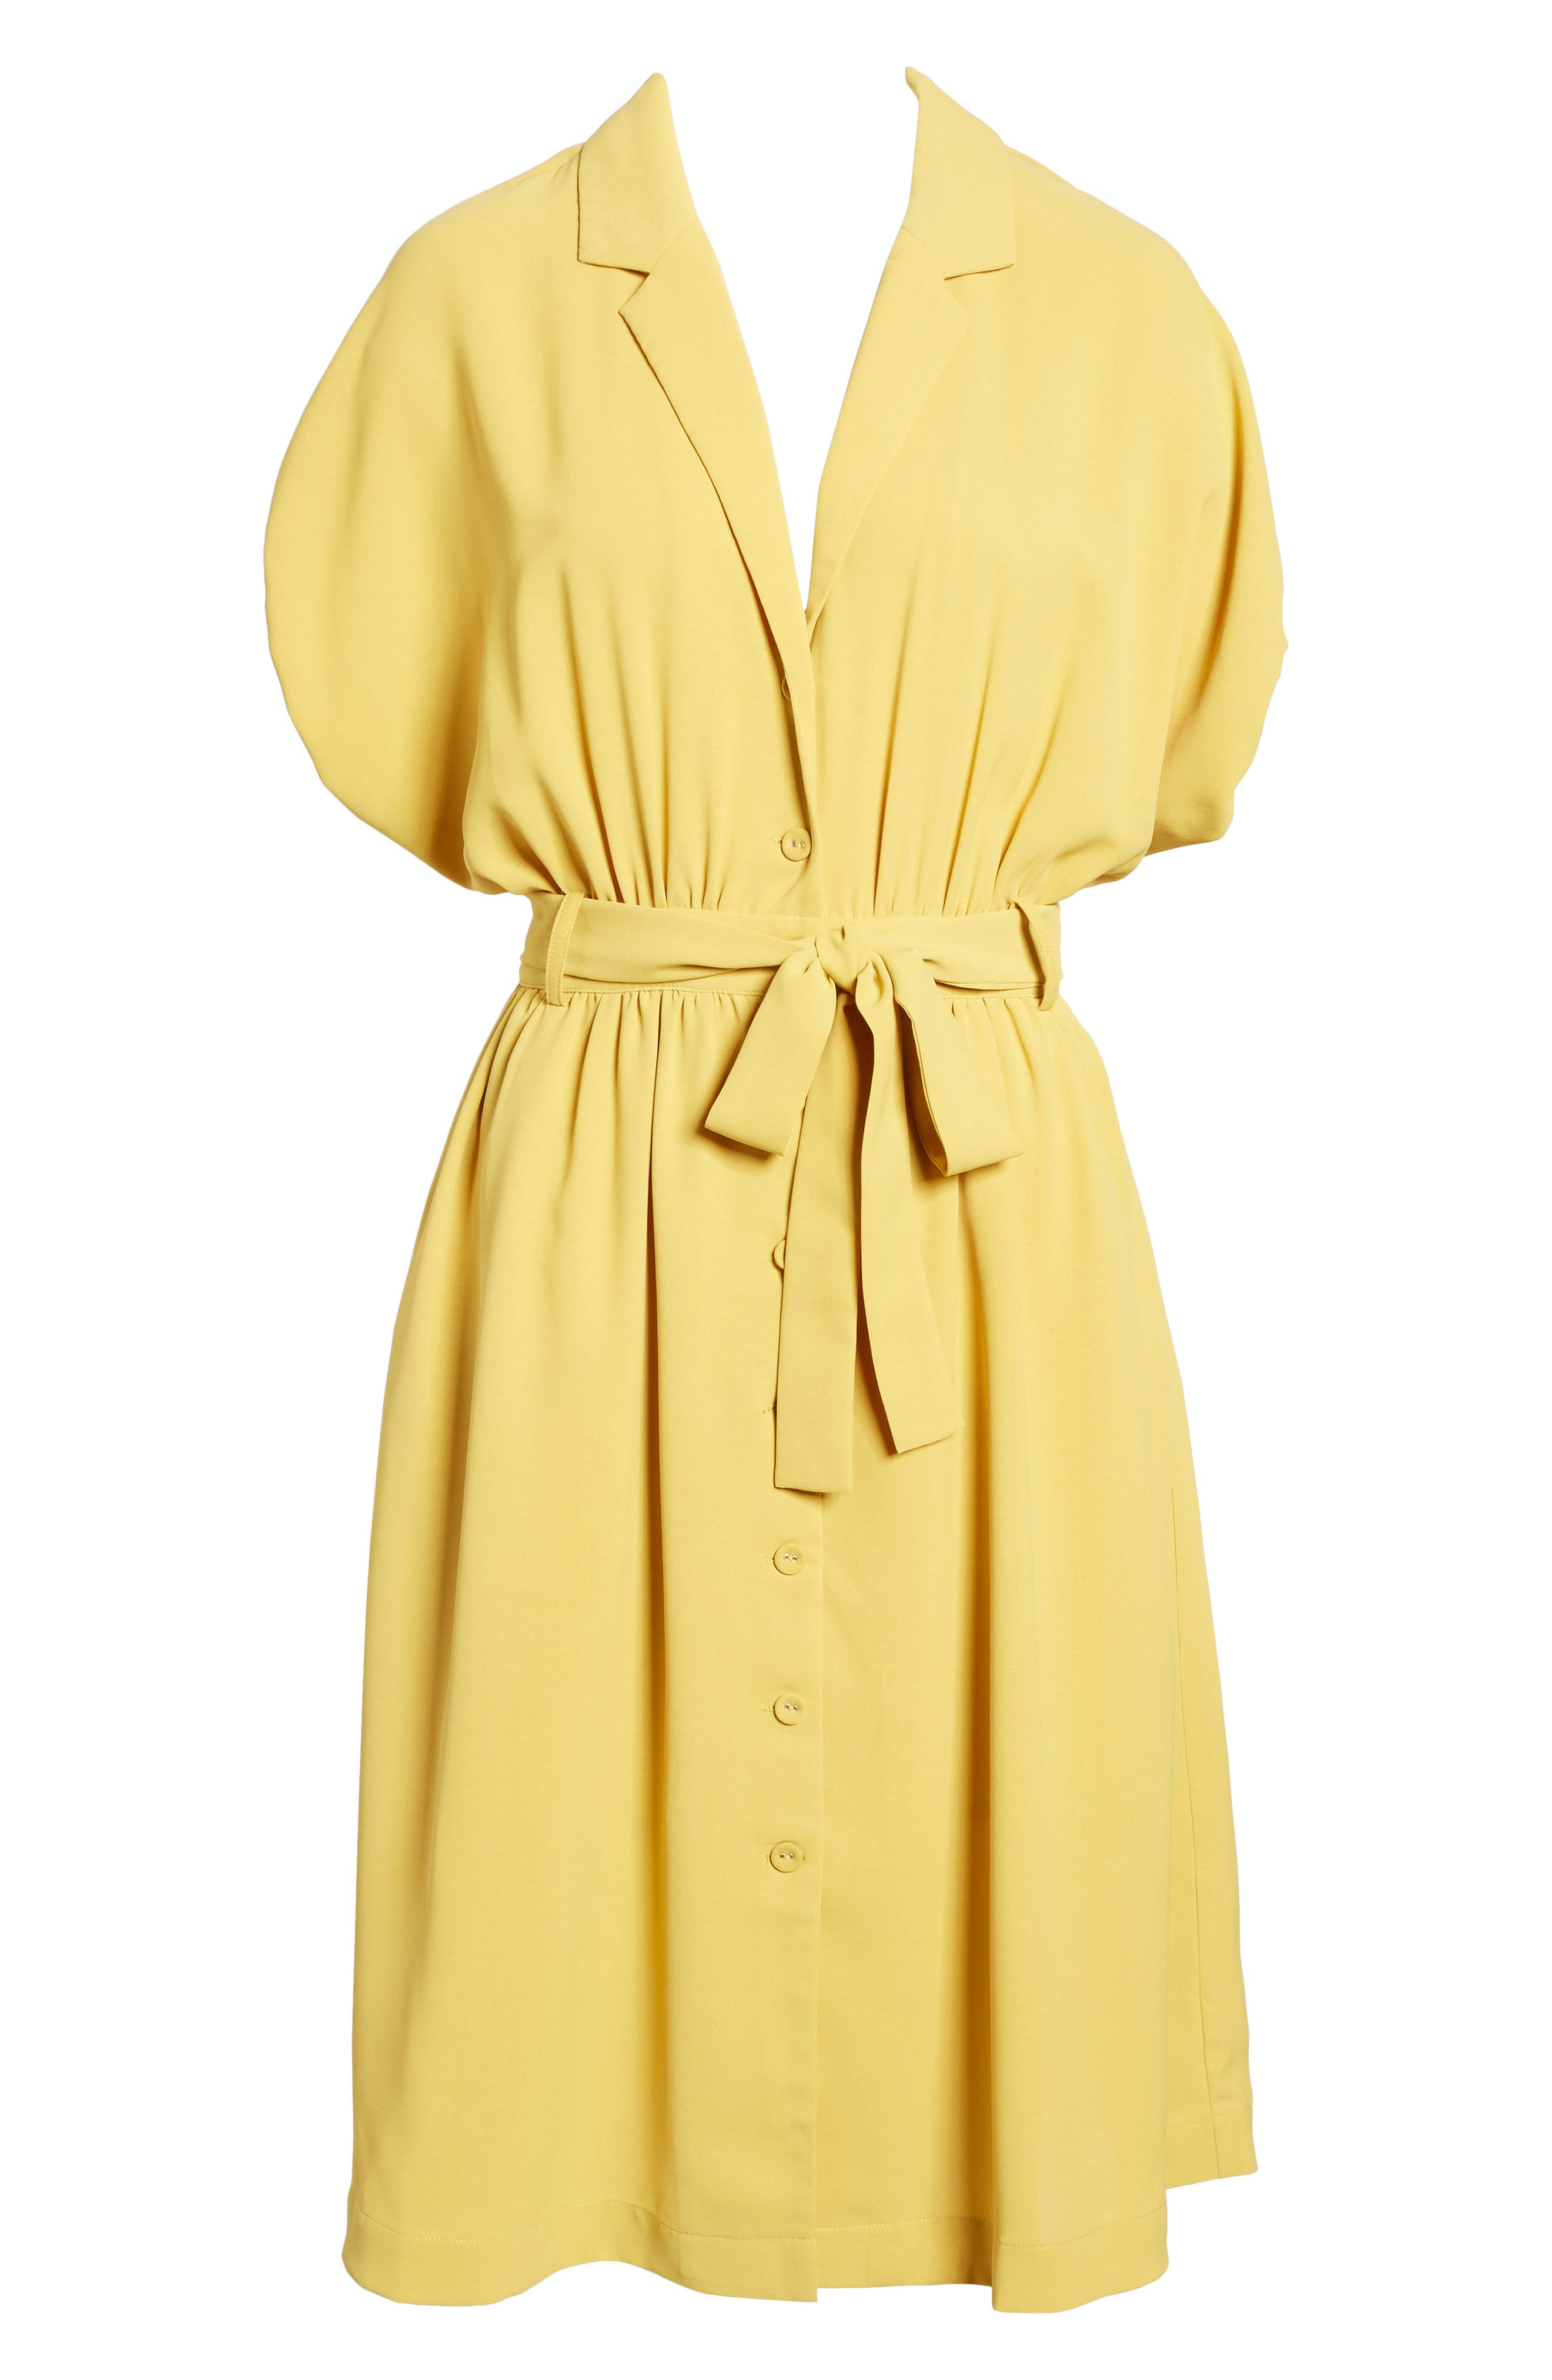 Chriselle x J.O.A. Cocoon Sleeve Dress,                             Alternate thumbnail 8, color,                             Roman Gold